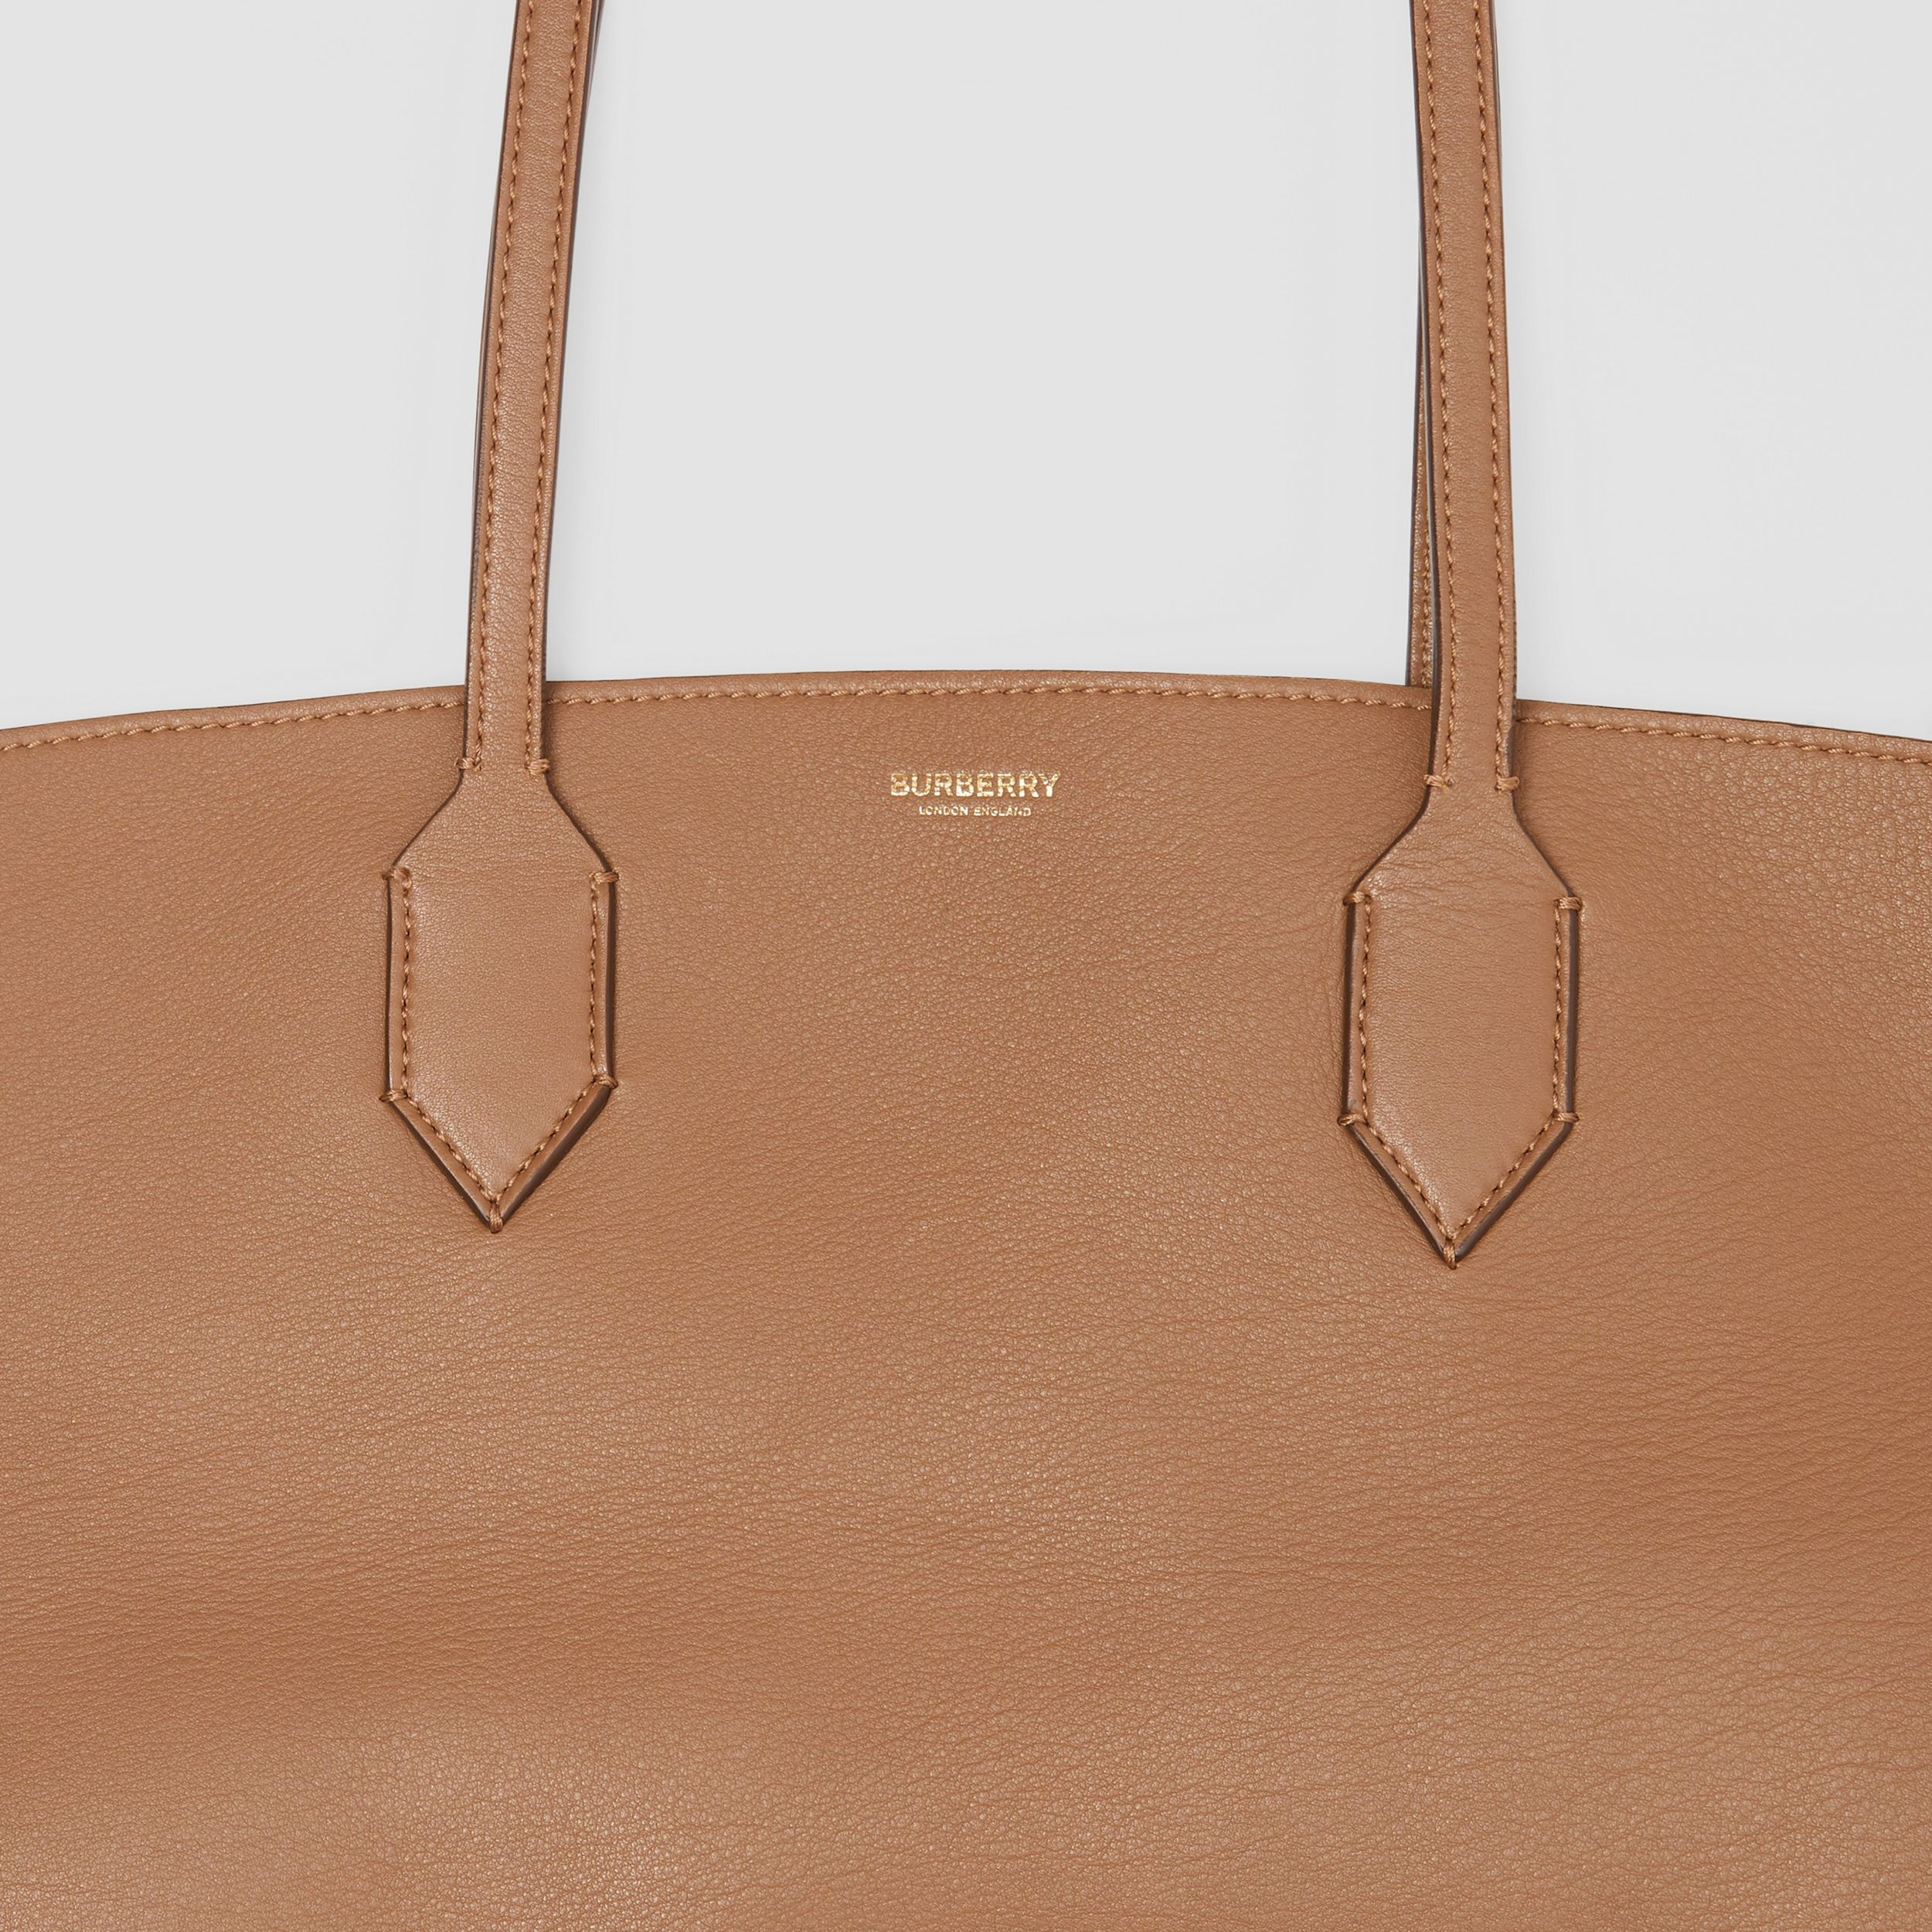 Medium Leather Society Tote in Dusty Caramel - Women | Burberry - 2